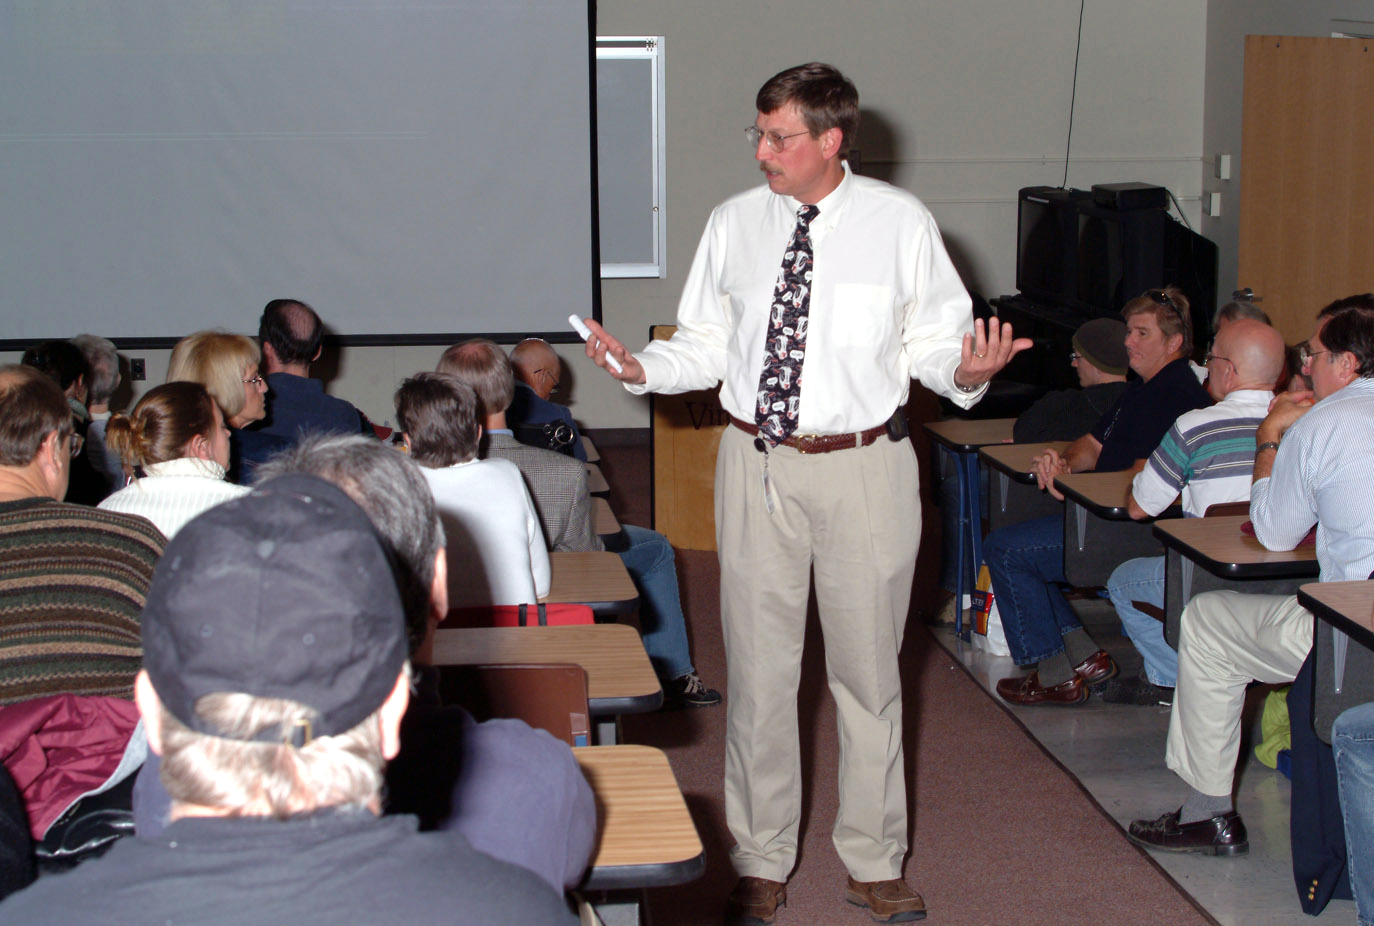 Veterinary College faculty member, Dr. Kevin Pelzer, provides lecture for continuing education program.